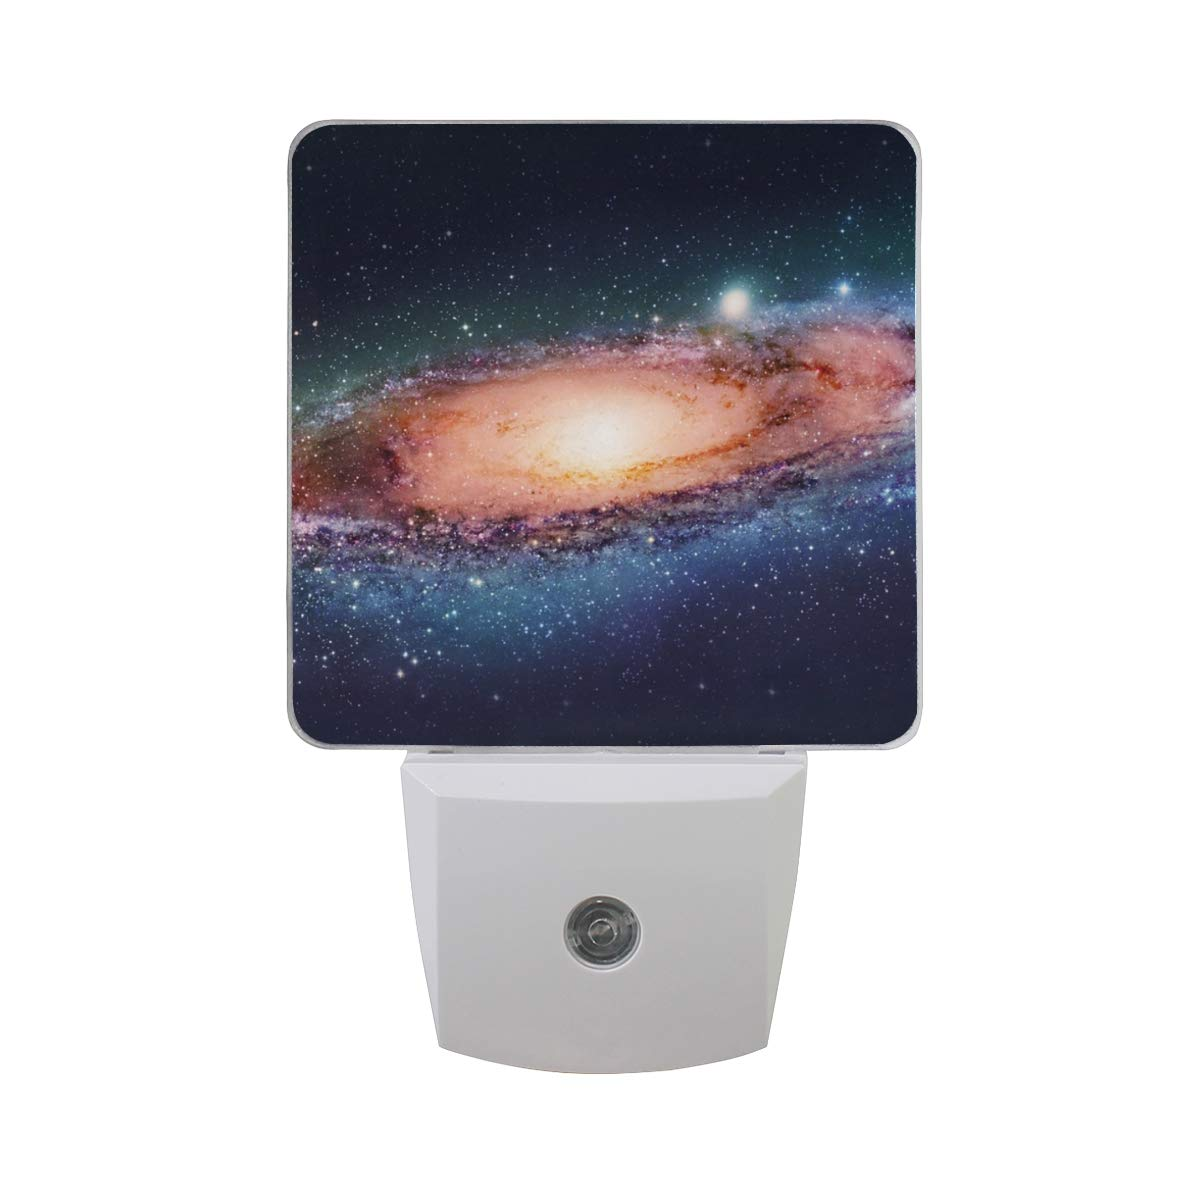 Night Light Space Galaxy Best Led Light Lamp for Hallway, Kitchen, Bathroom, Bedroom, Stairs, DaylightWhite, Bedroom, Compact